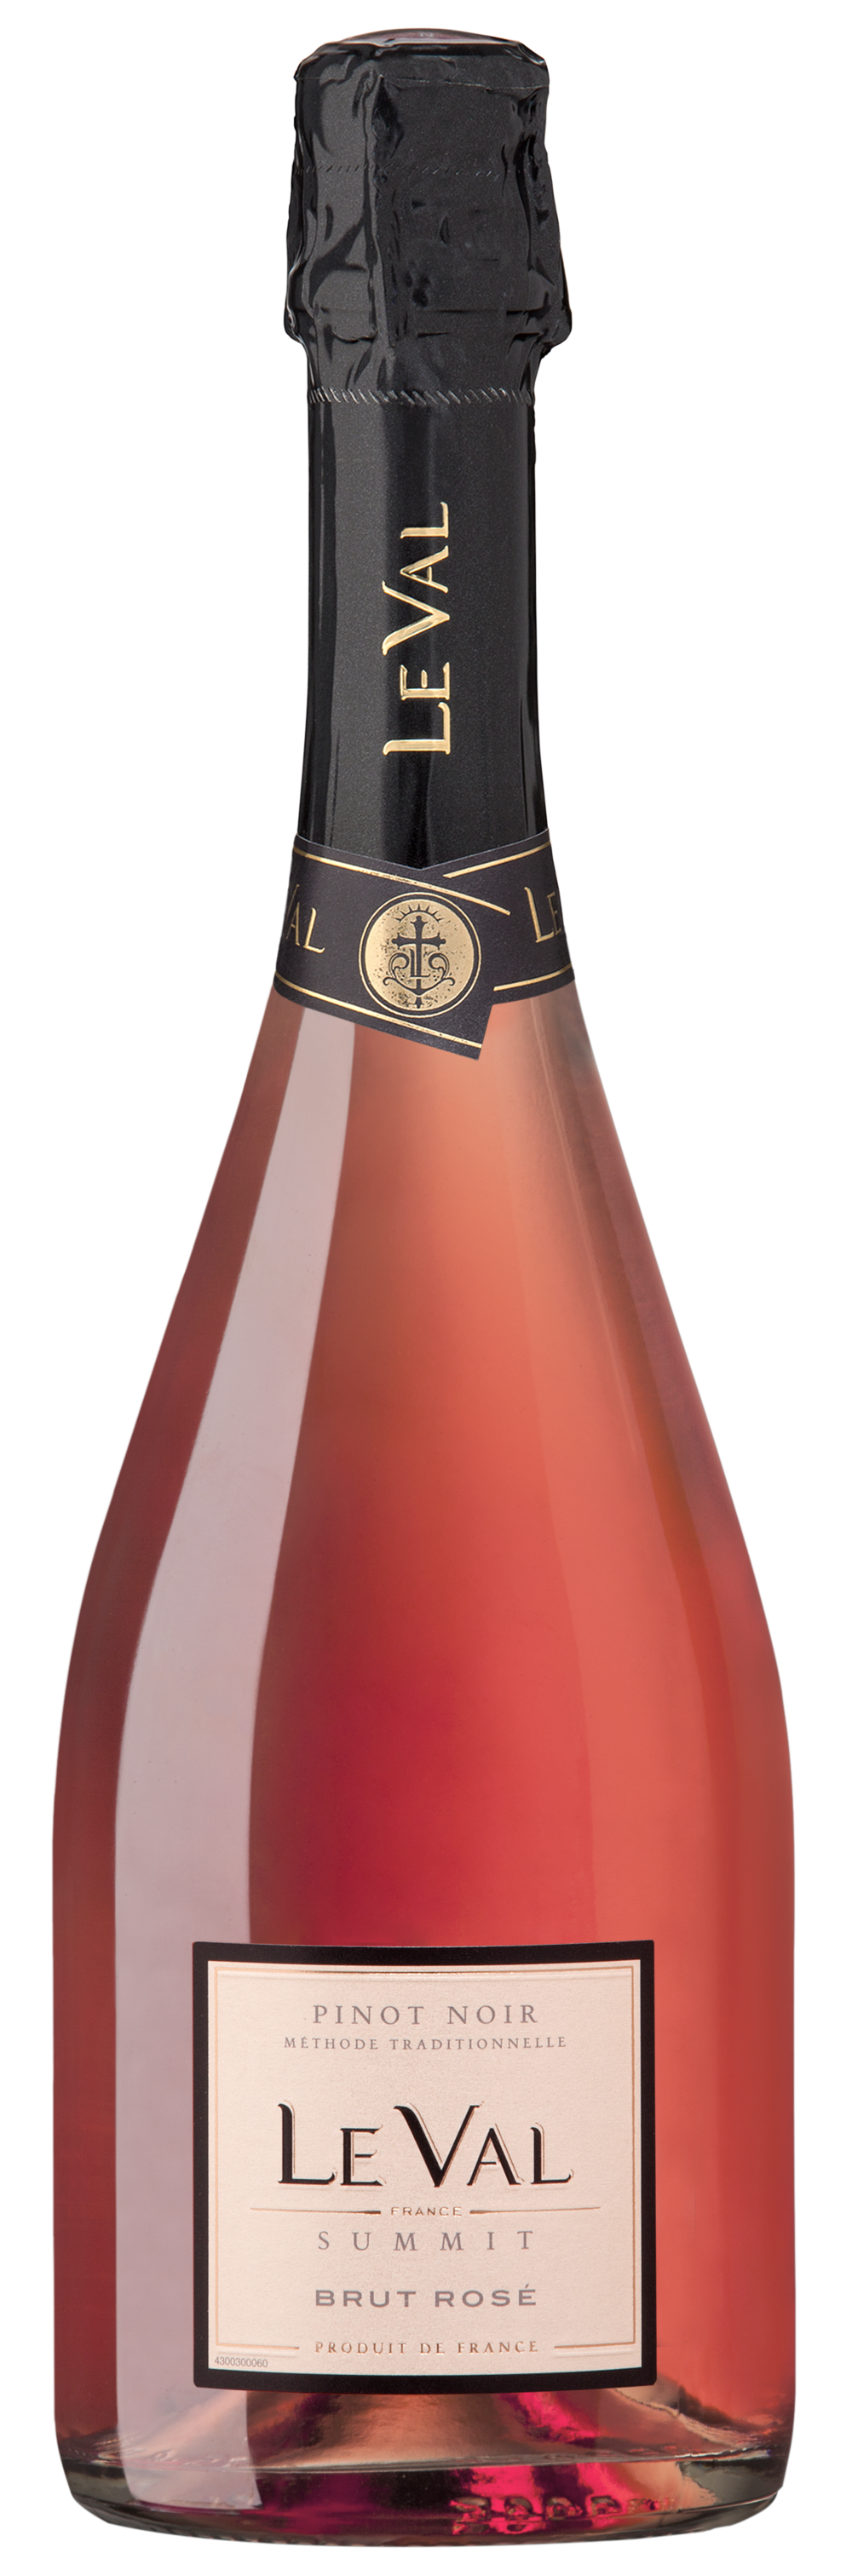 LE VAL PINOT NOIR.png